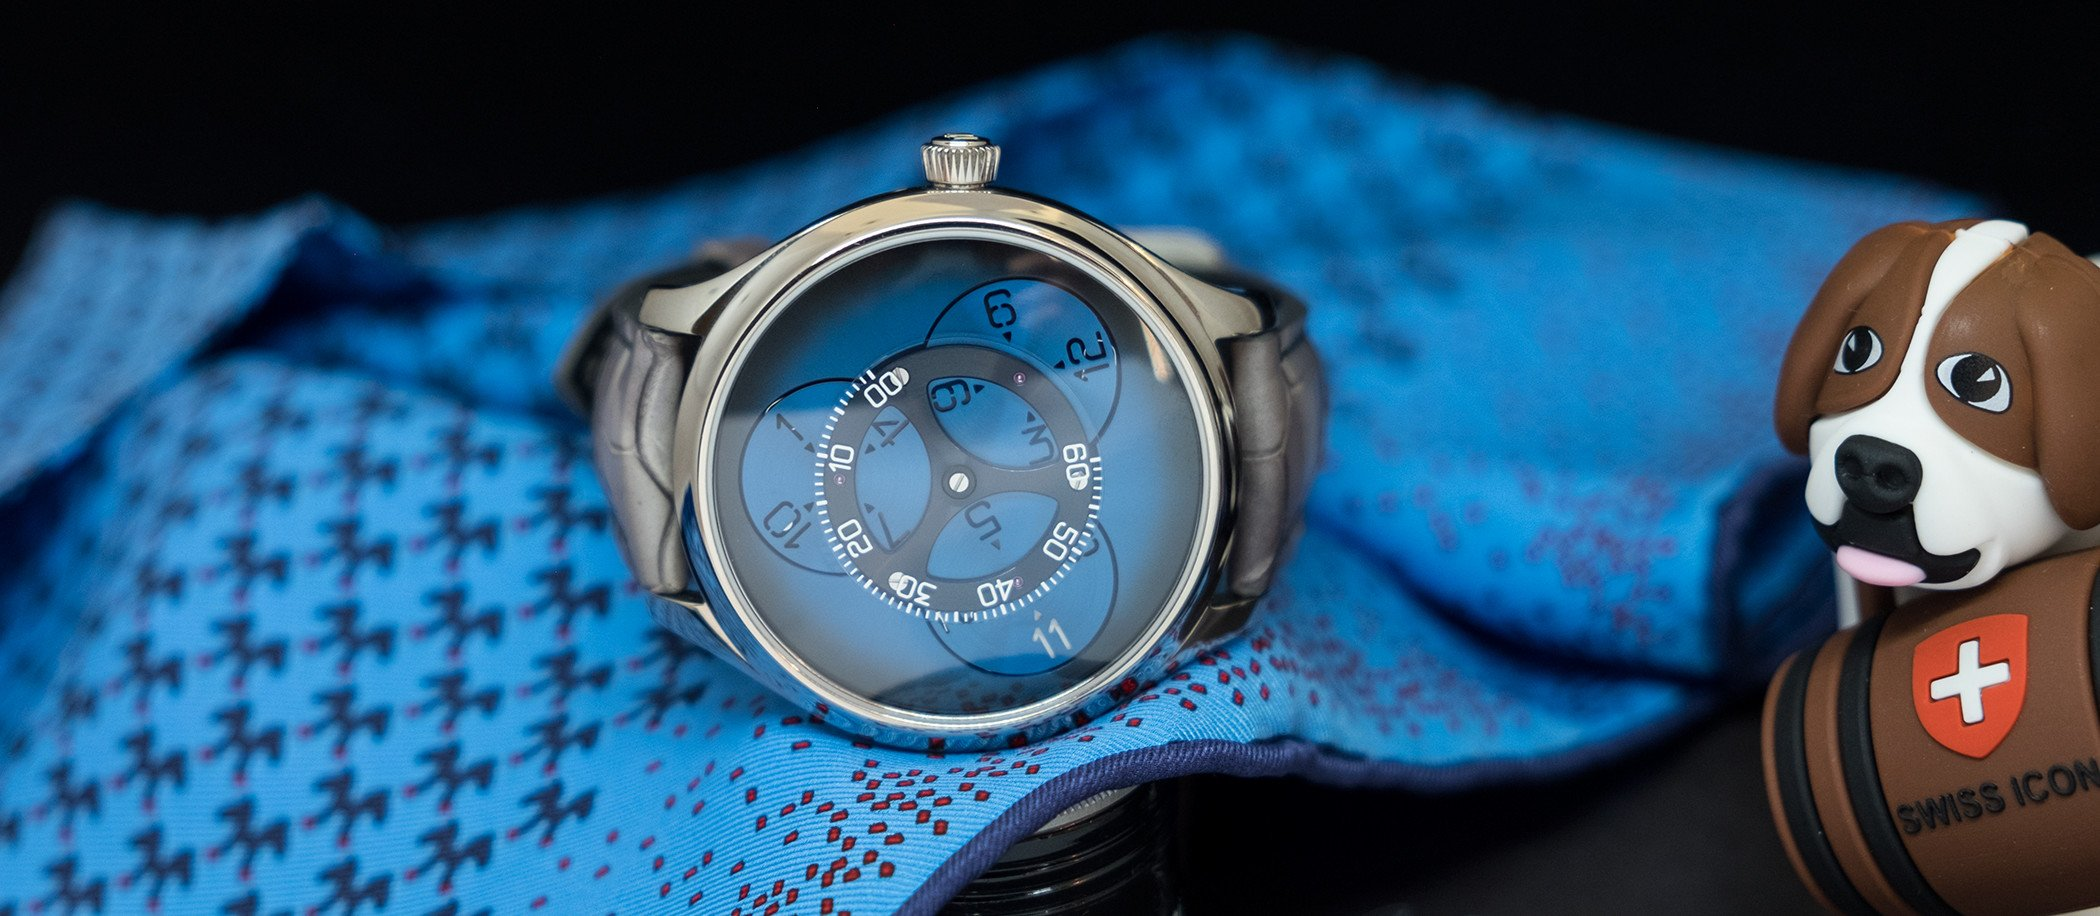 H. Moser & Cie. Endeavour Flying Hours